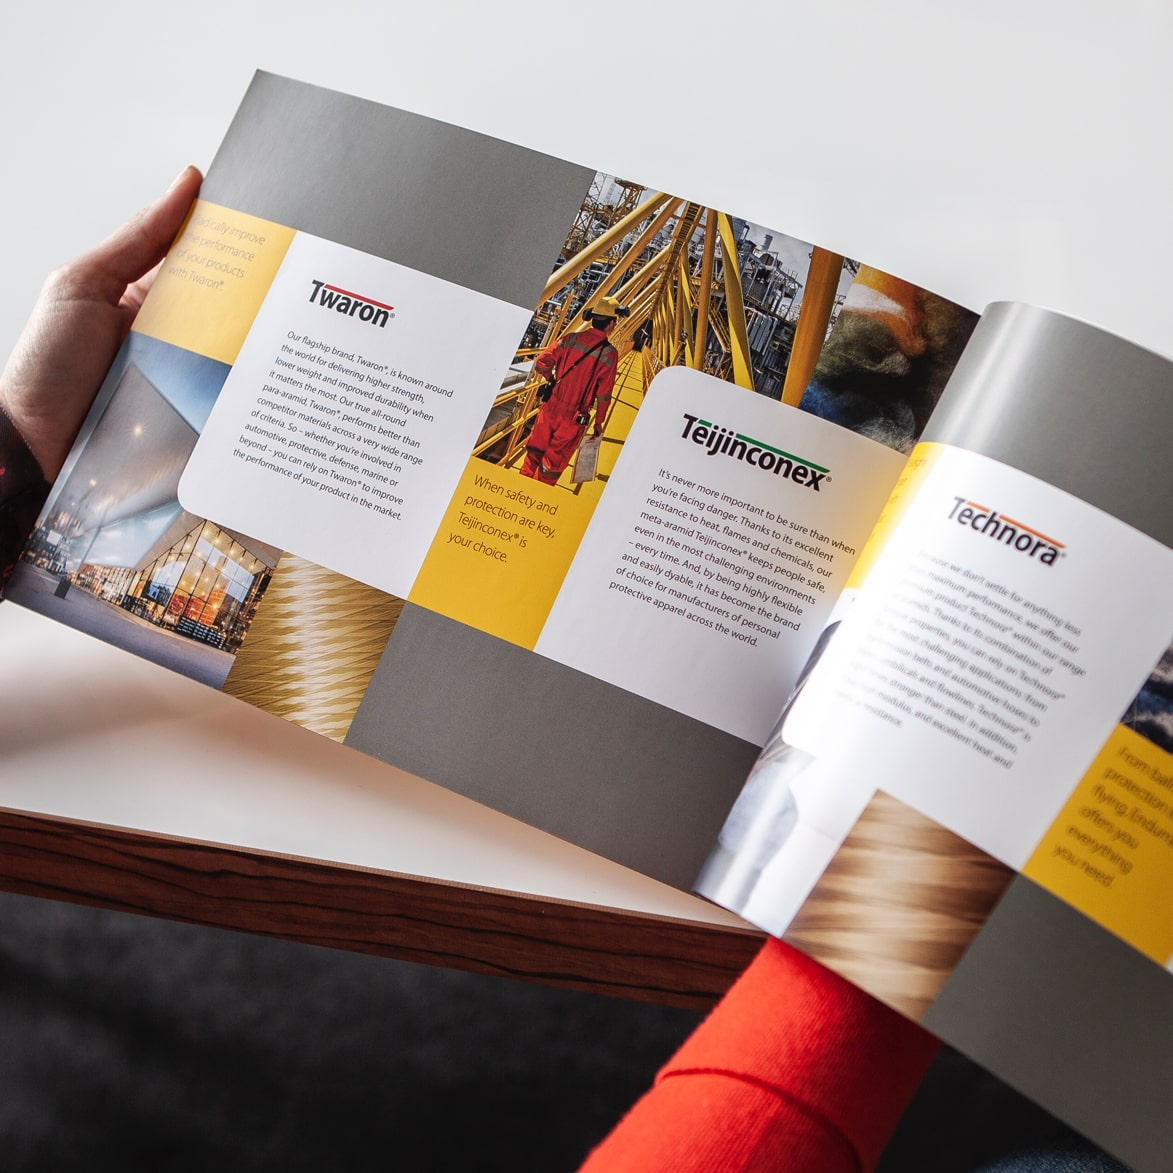 Corporate brochure Teijin Aramid met producten Twaron, Teijinconex, Technora en Endumax